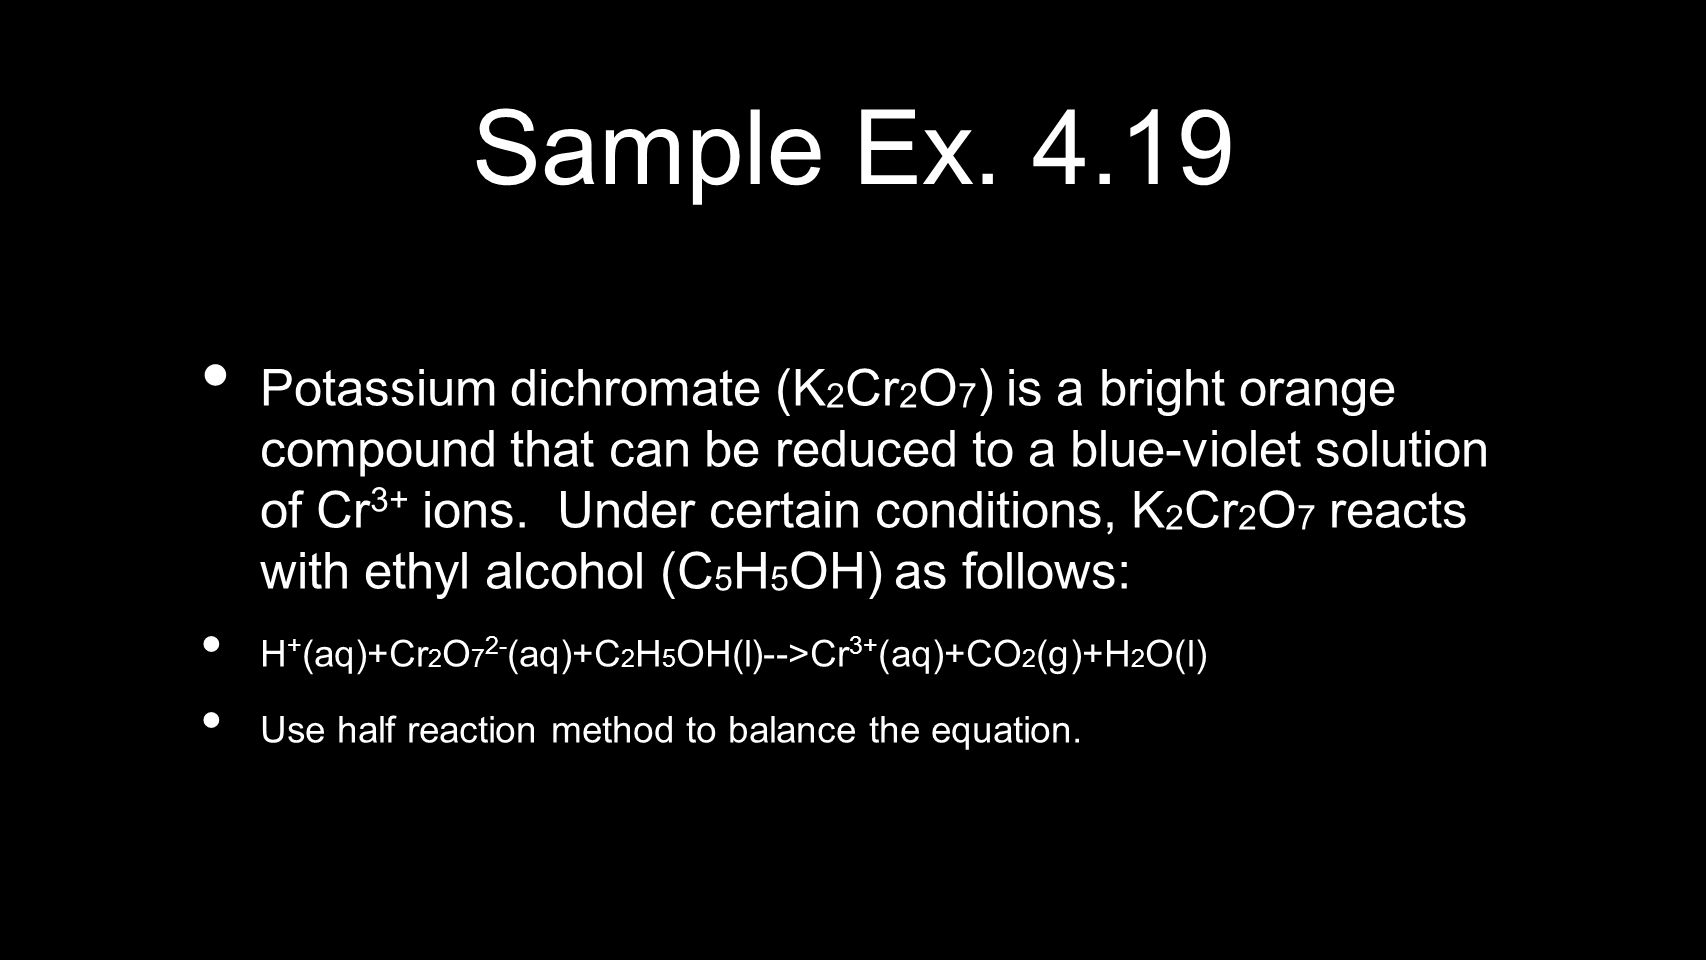 Sample Ex. 4.19